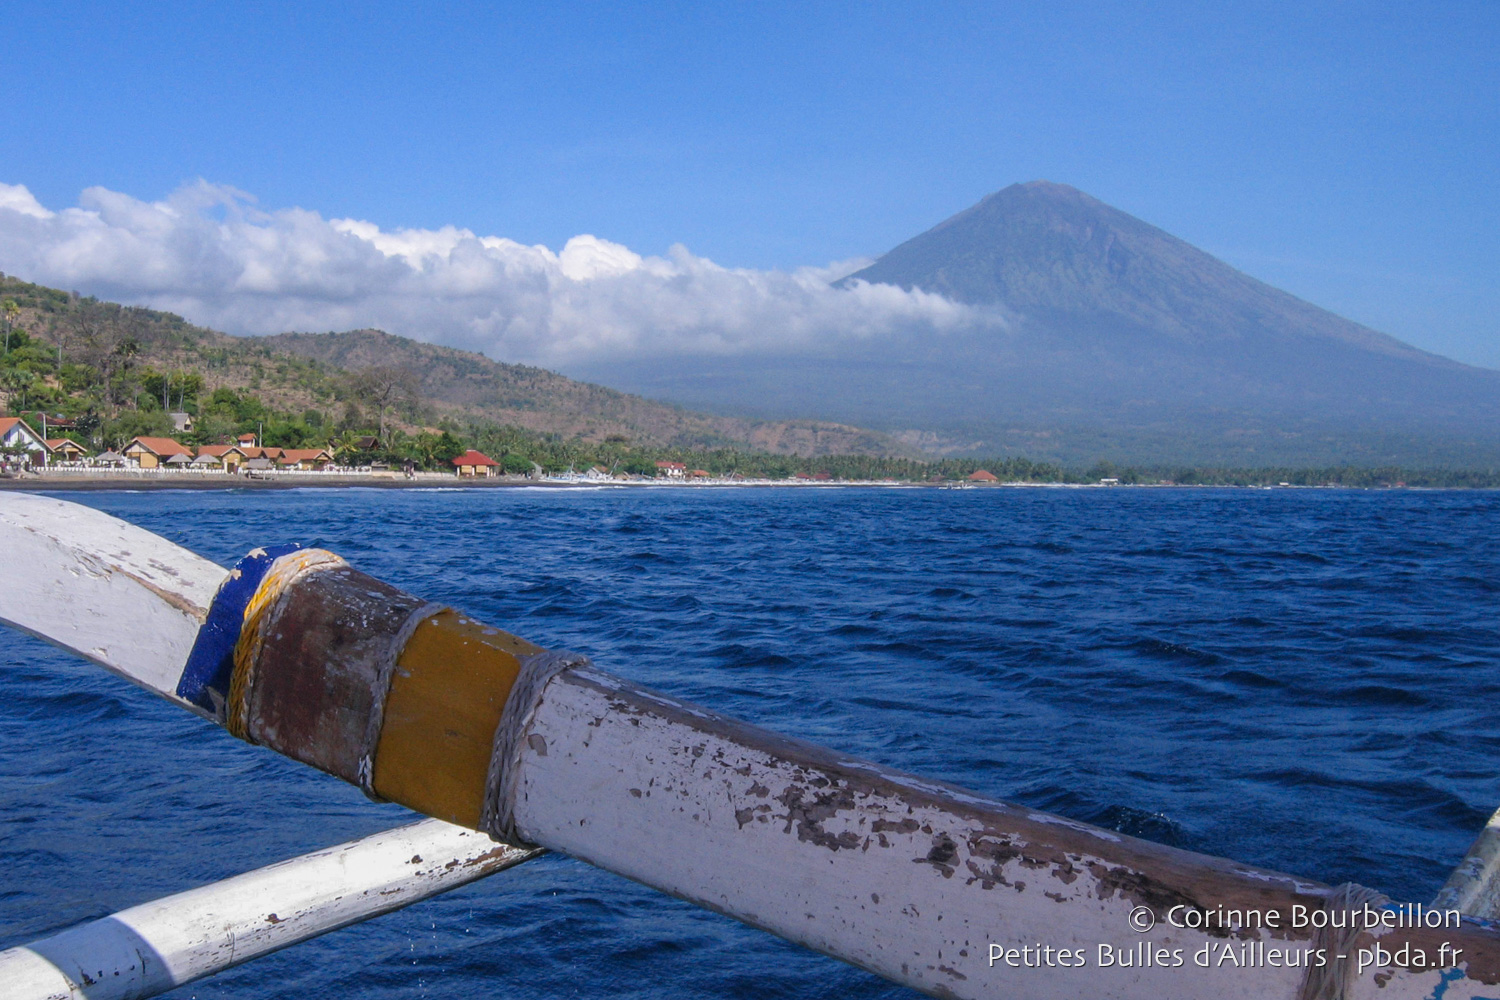 Mount Agung seen from the sea. (Amed, Bali, Indonesia, July 2008.)